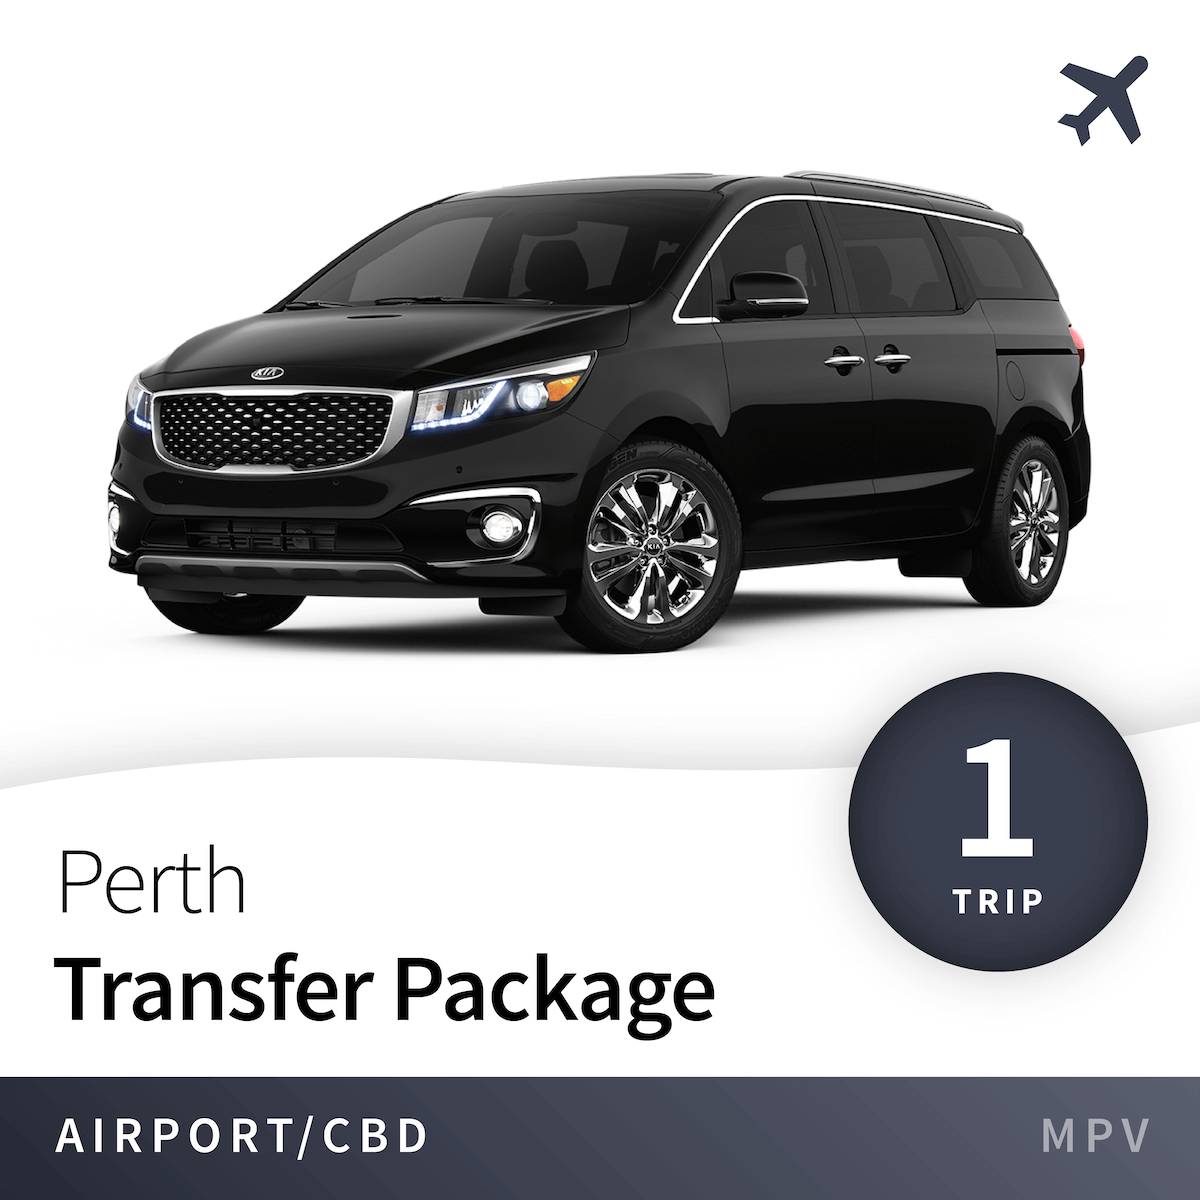 Perth Airport Transfer Package - MPV (1 Trip) 2